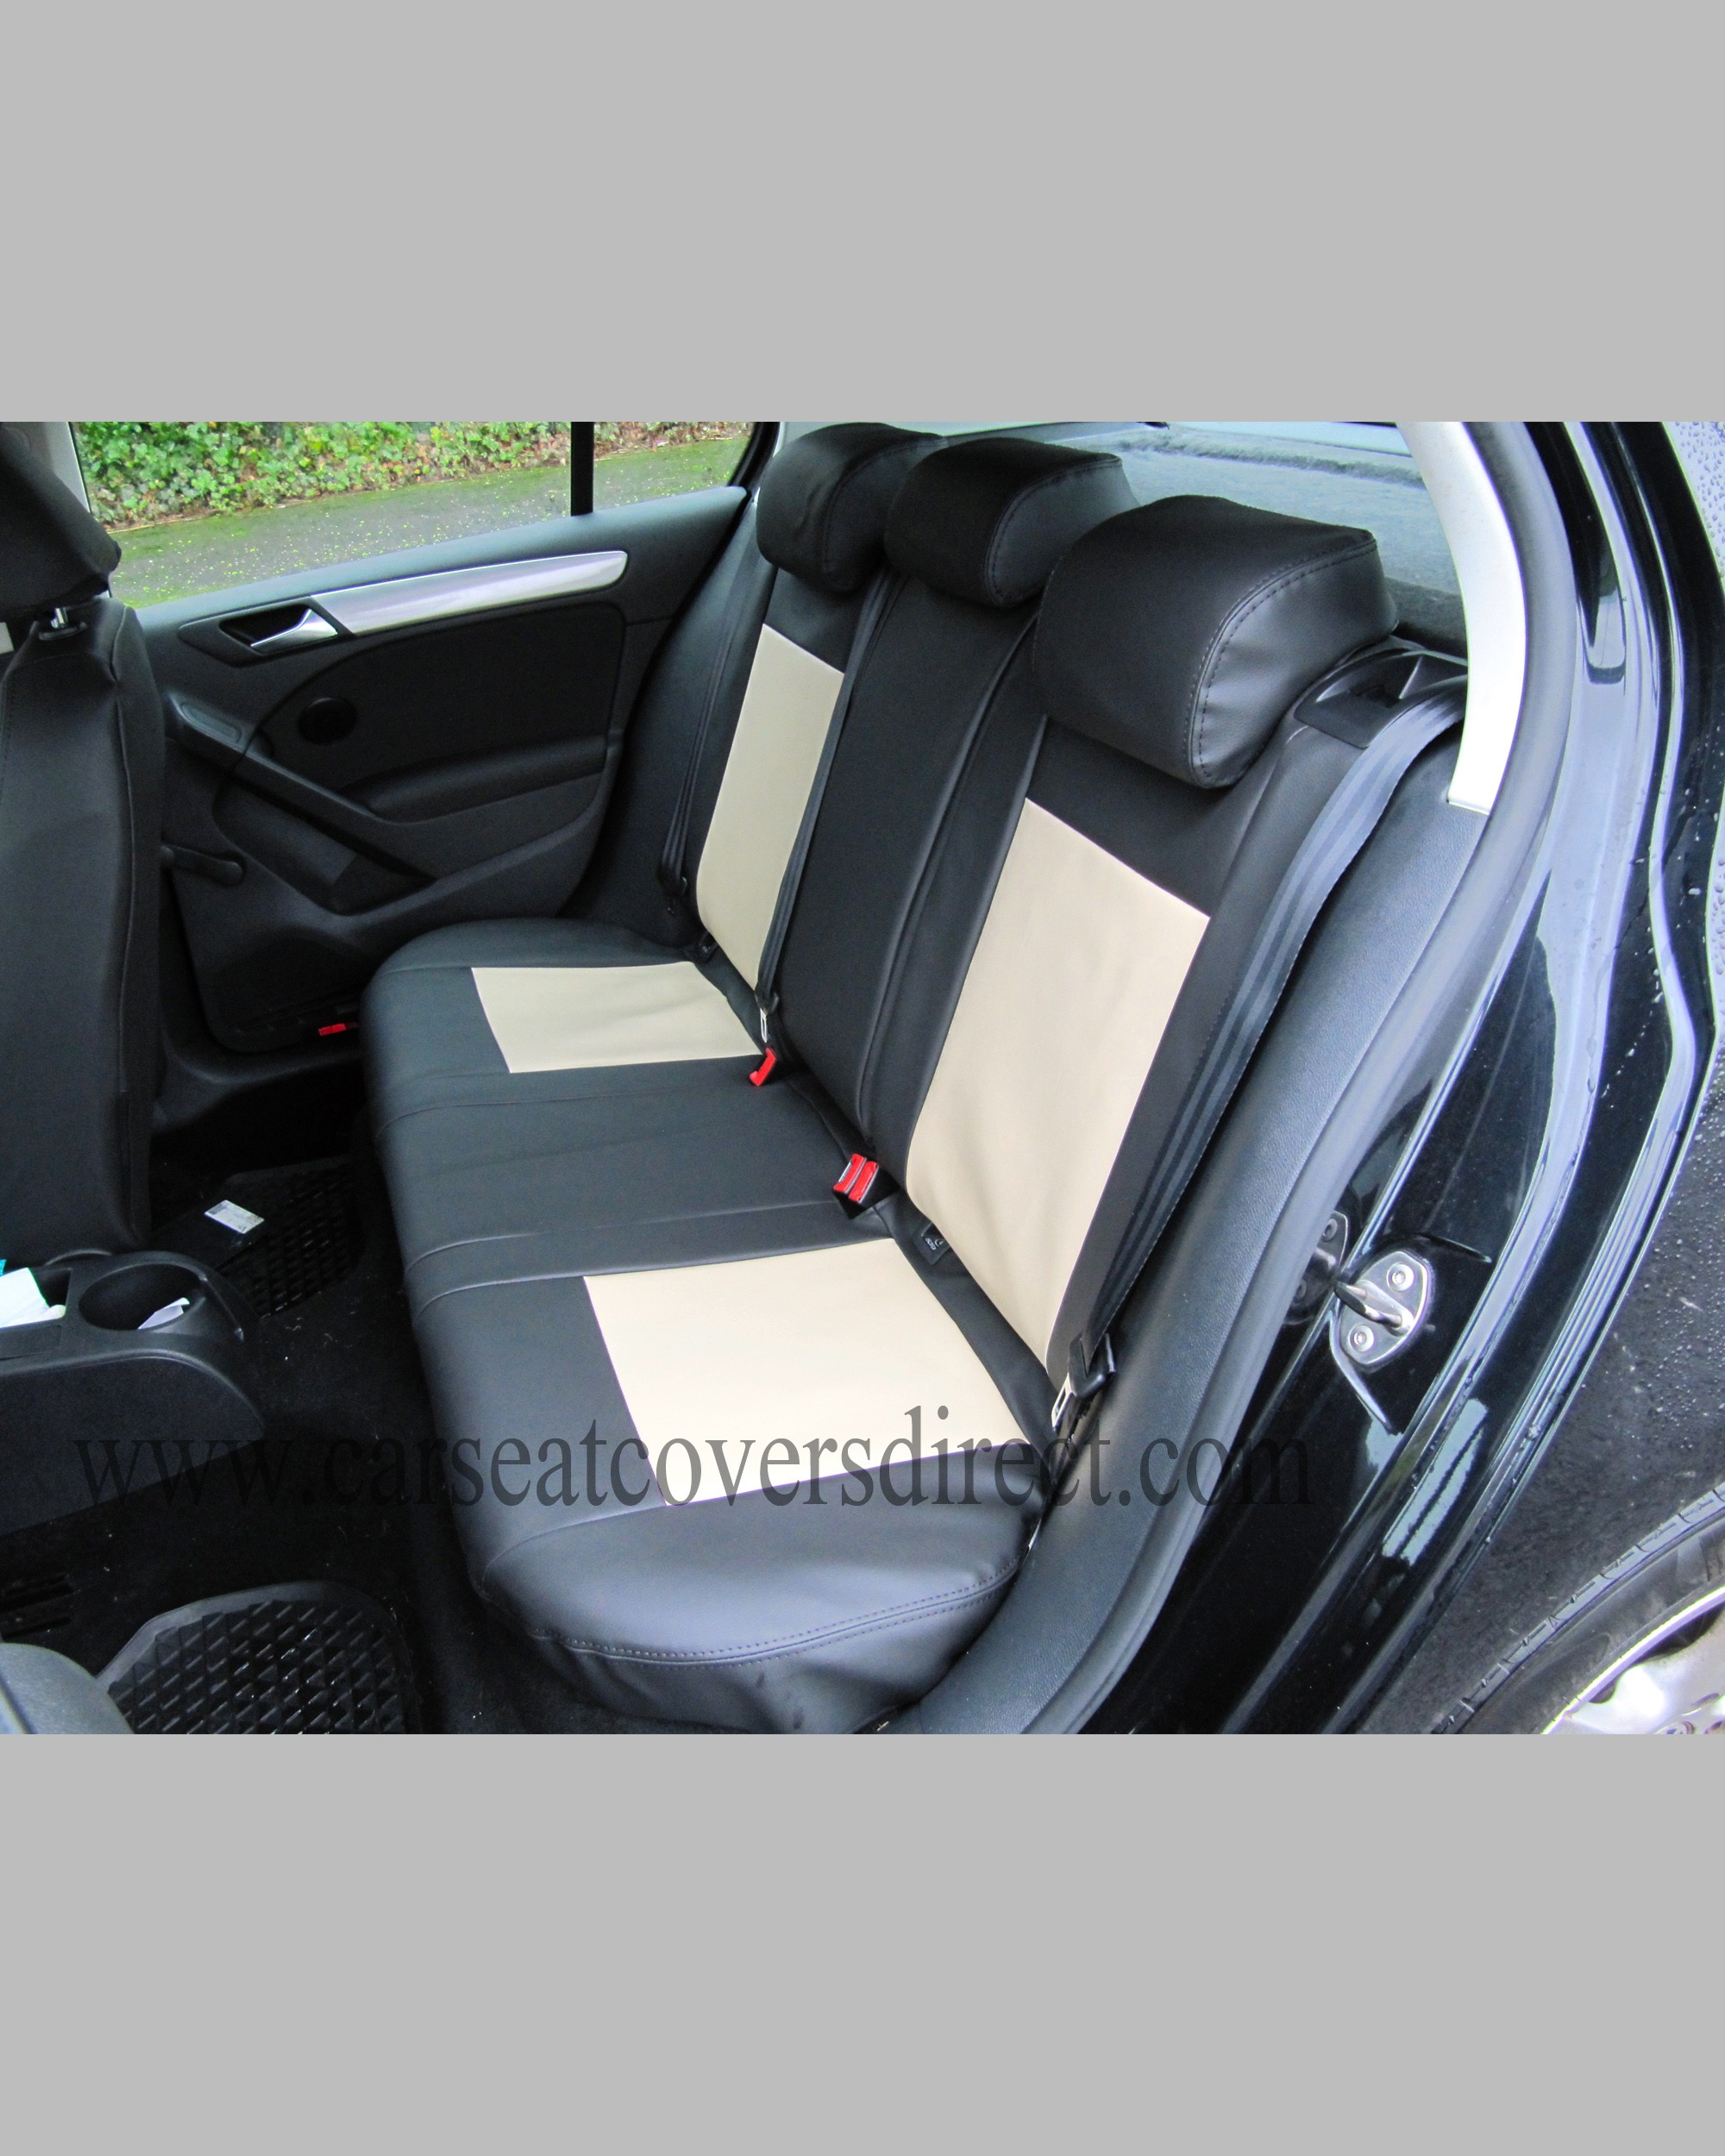 volkswagen vw golf mk6 seat covers car seat covers direct tailored to your choice. Black Bedroom Furniture Sets. Home Design Ideas